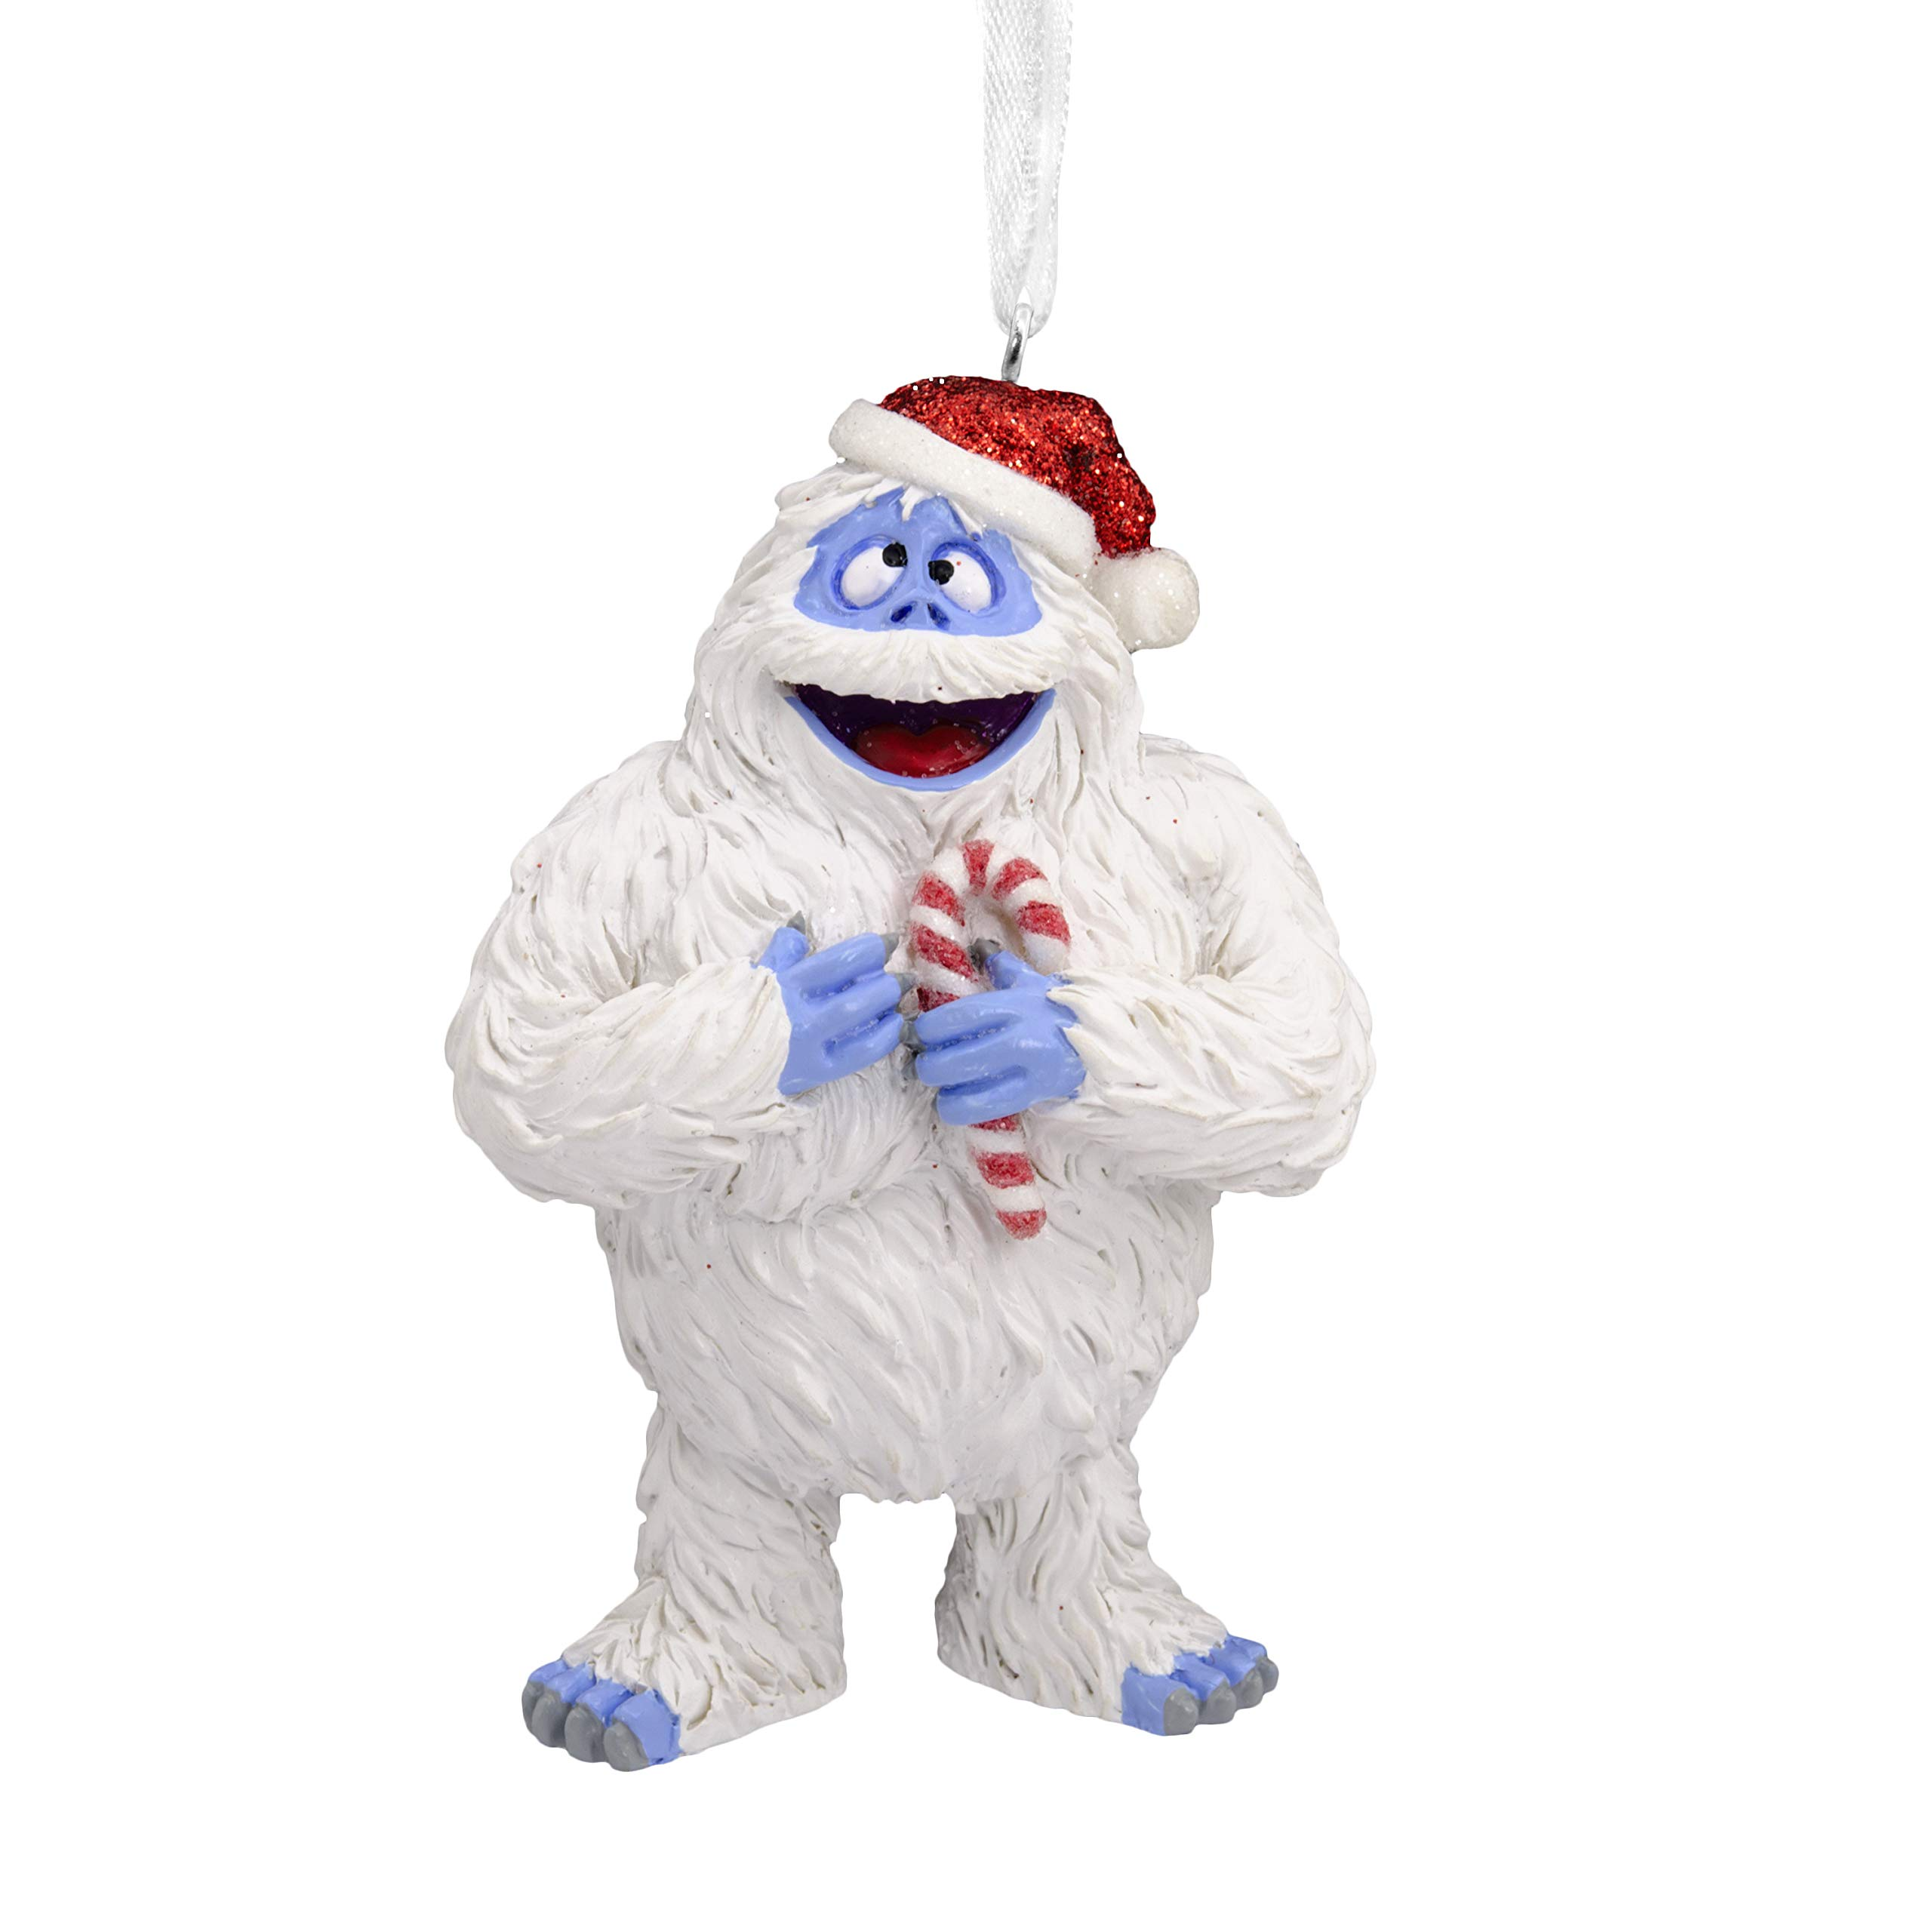 Abominable Snowman Coloring Pages - GetColoringPages.com | 2560x2560